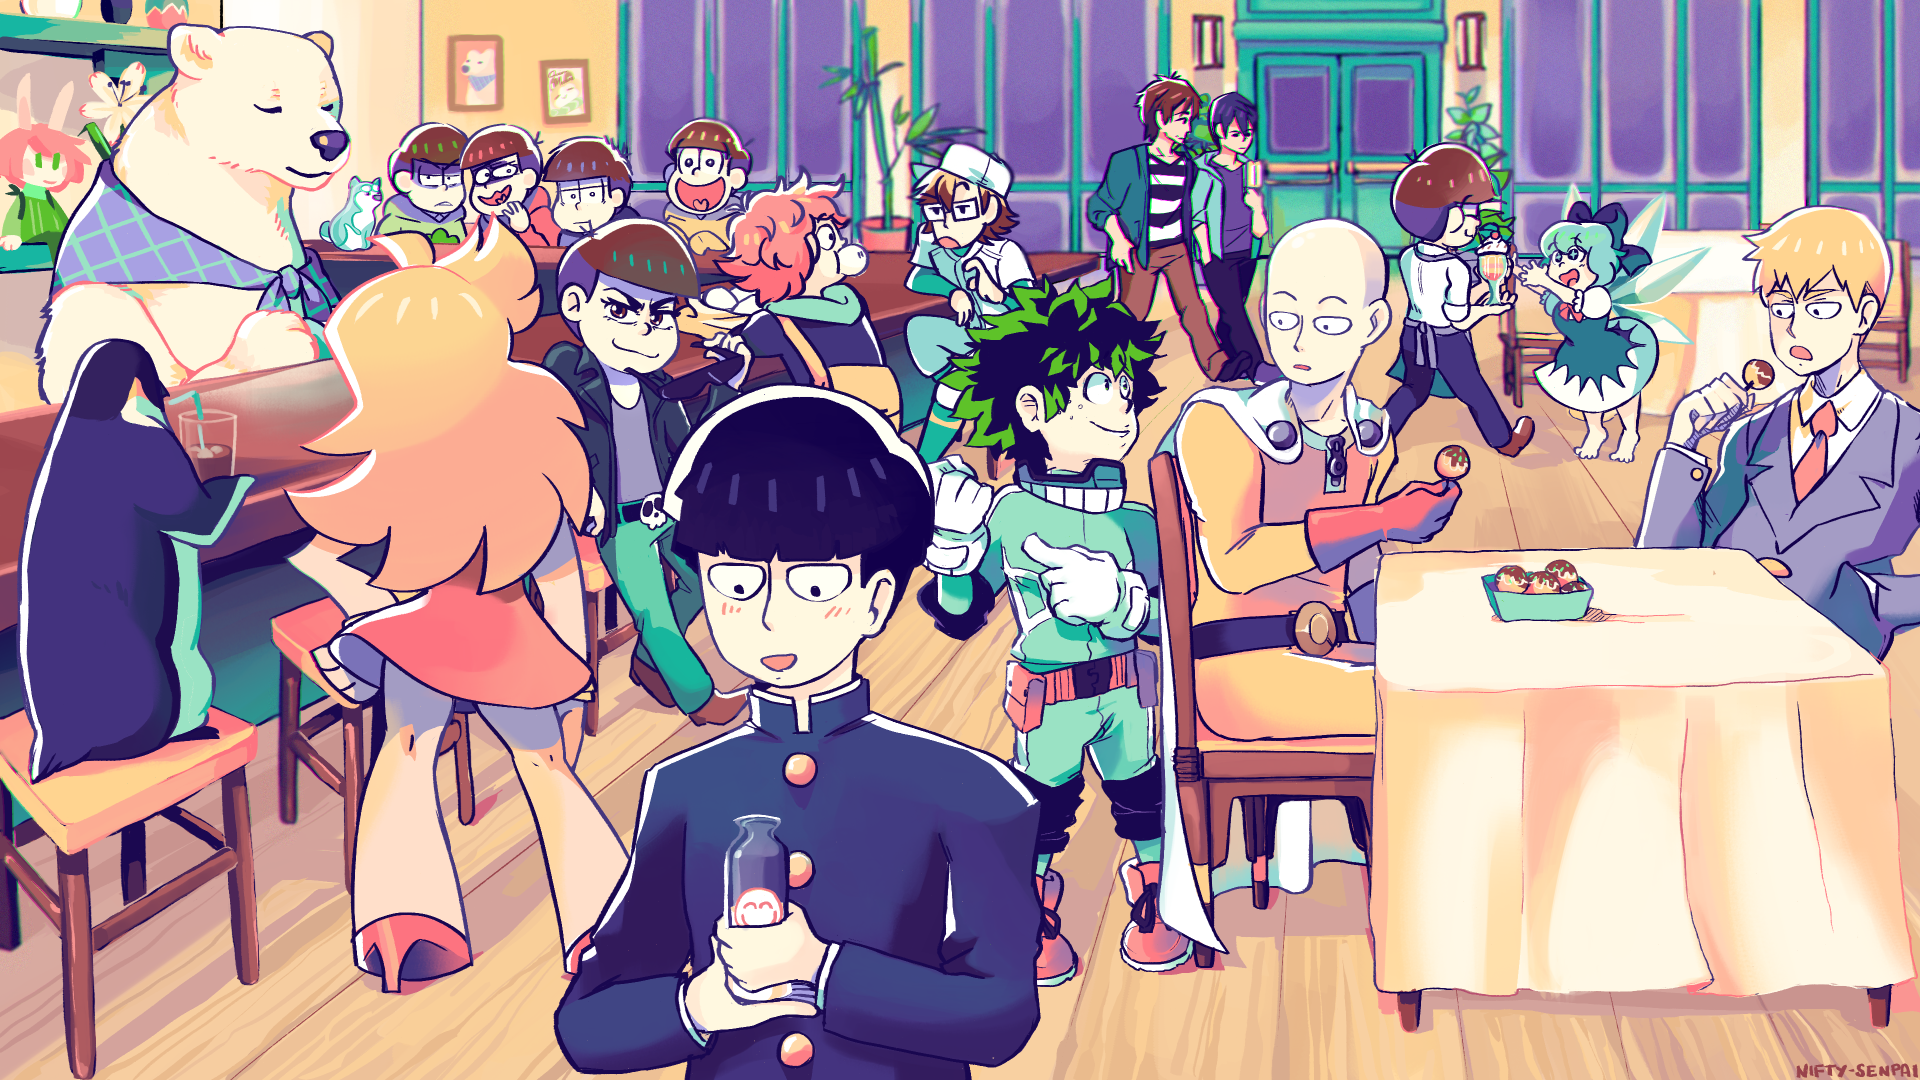 Anime - Crossover  Shigeo Kageyama Saitama (One-Punch Man) Izuku Midoriya Arataka Reigen Makoto Tachibana Haruka Nanase Osomatsu Matsuno Karamatsu Matsuno Choromatsu Matsuno Ichimatsu Matsuno Jyushimatsu Matsuno Todomatsu Matsuno Osomatsu-san Boku no Hero Academia My Hero Academia Mob Psycho 100 One Punch-Man Free! Cucumber (Cucumber Quest!) Panty (Panty & Stocking with Garterbelt) Panty & Stocking with Garterbelt Wallpaper